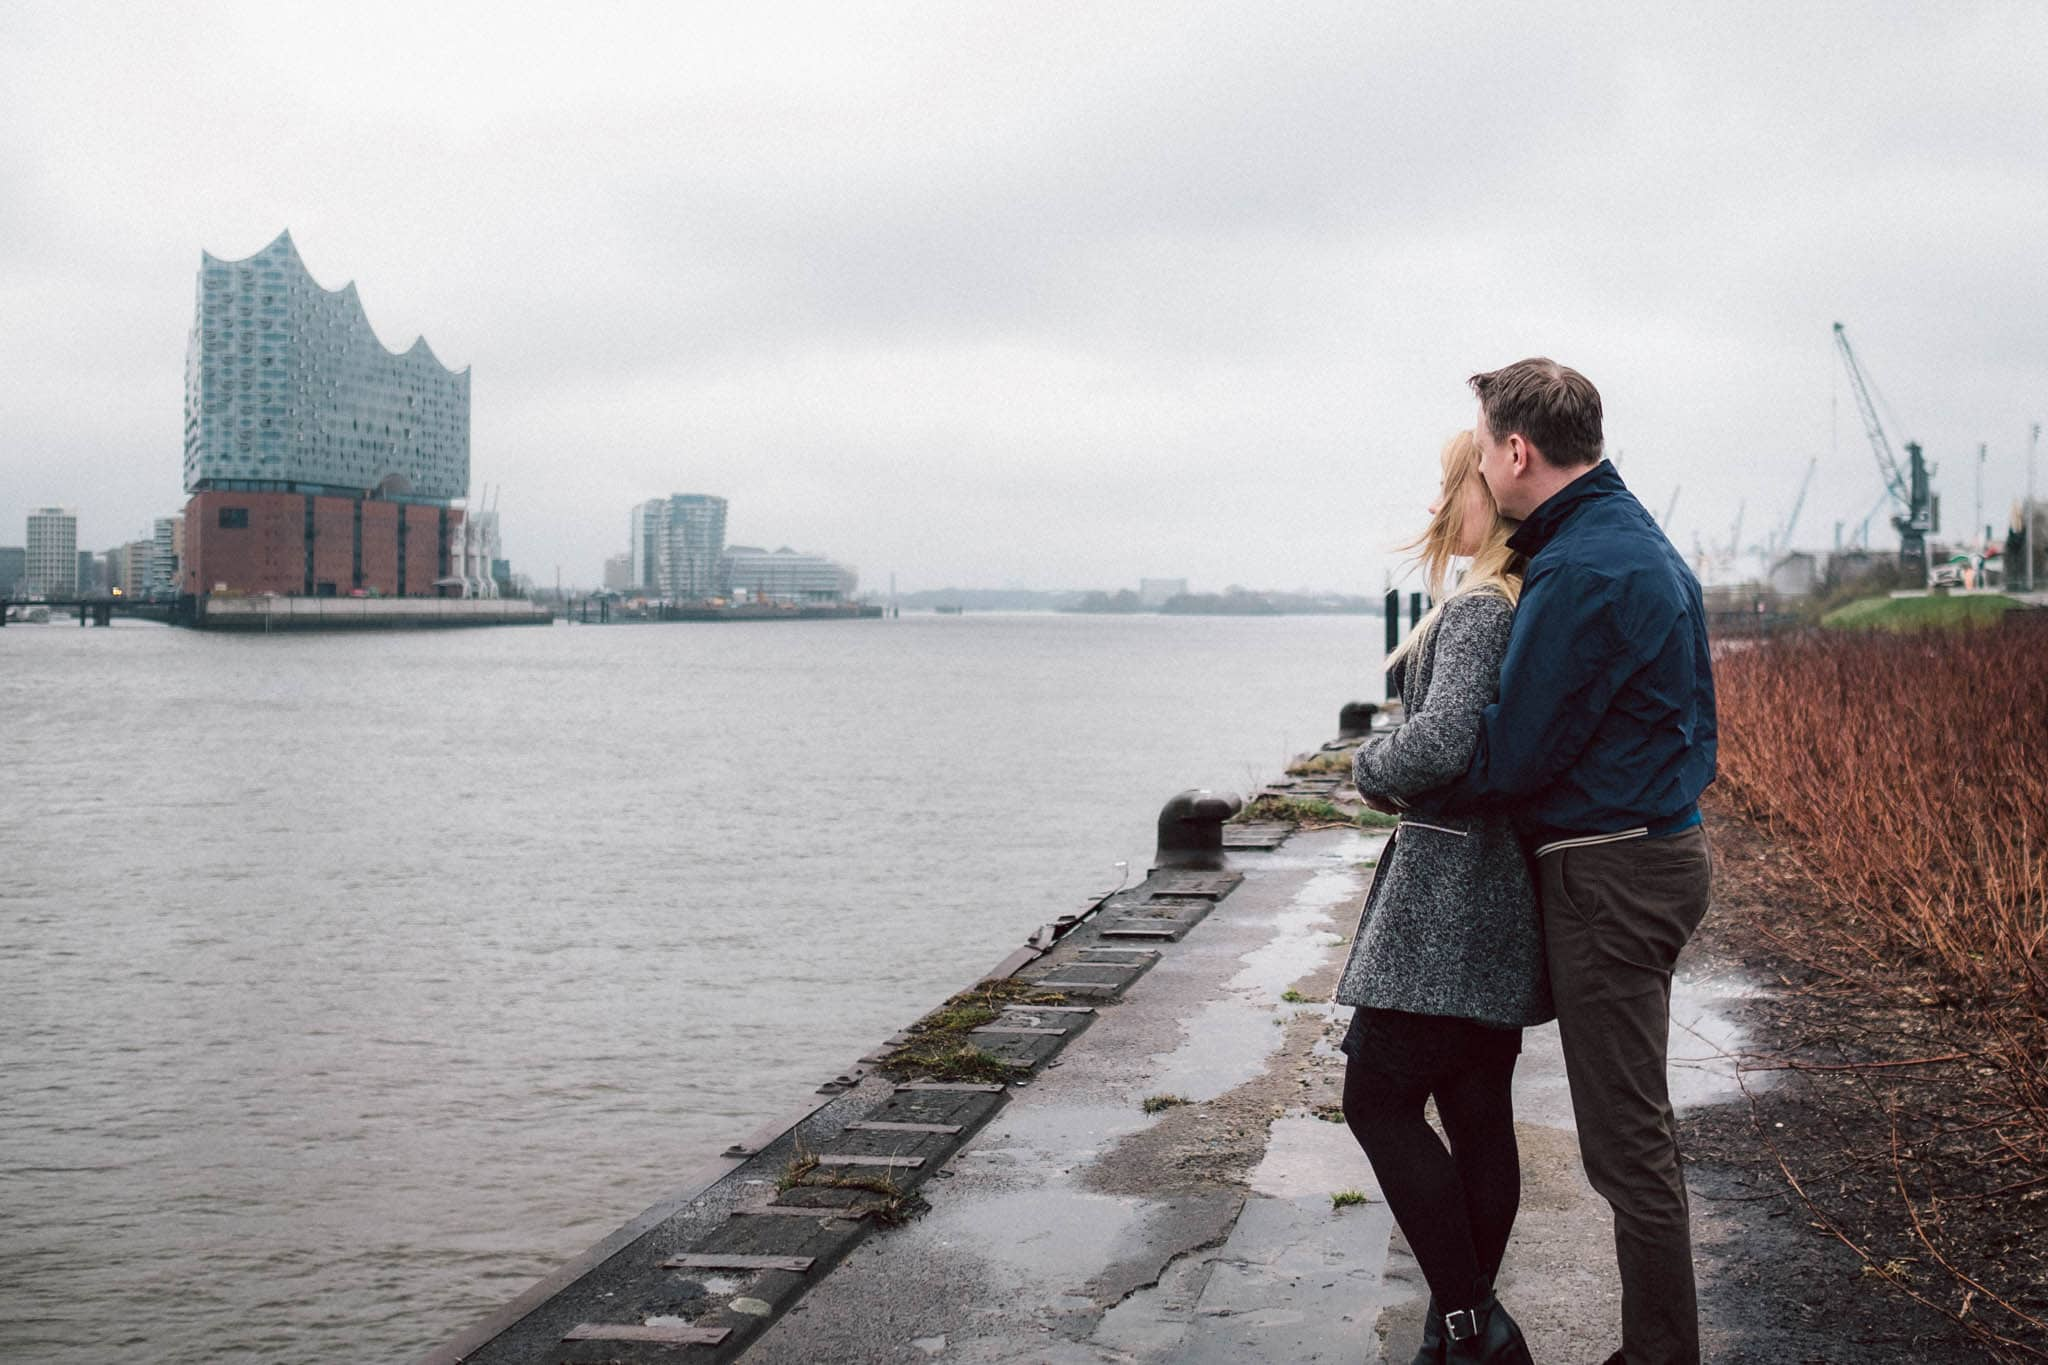 Engagementshooting, Hochzeitsfieber by Photo-Schomburg, Pärchenshoot, Hamburg, Elbe, Hamburger Hafen, Hochzeitsfotograf, Wedding, Coupleshoot, Hochzeitsfotografie-2